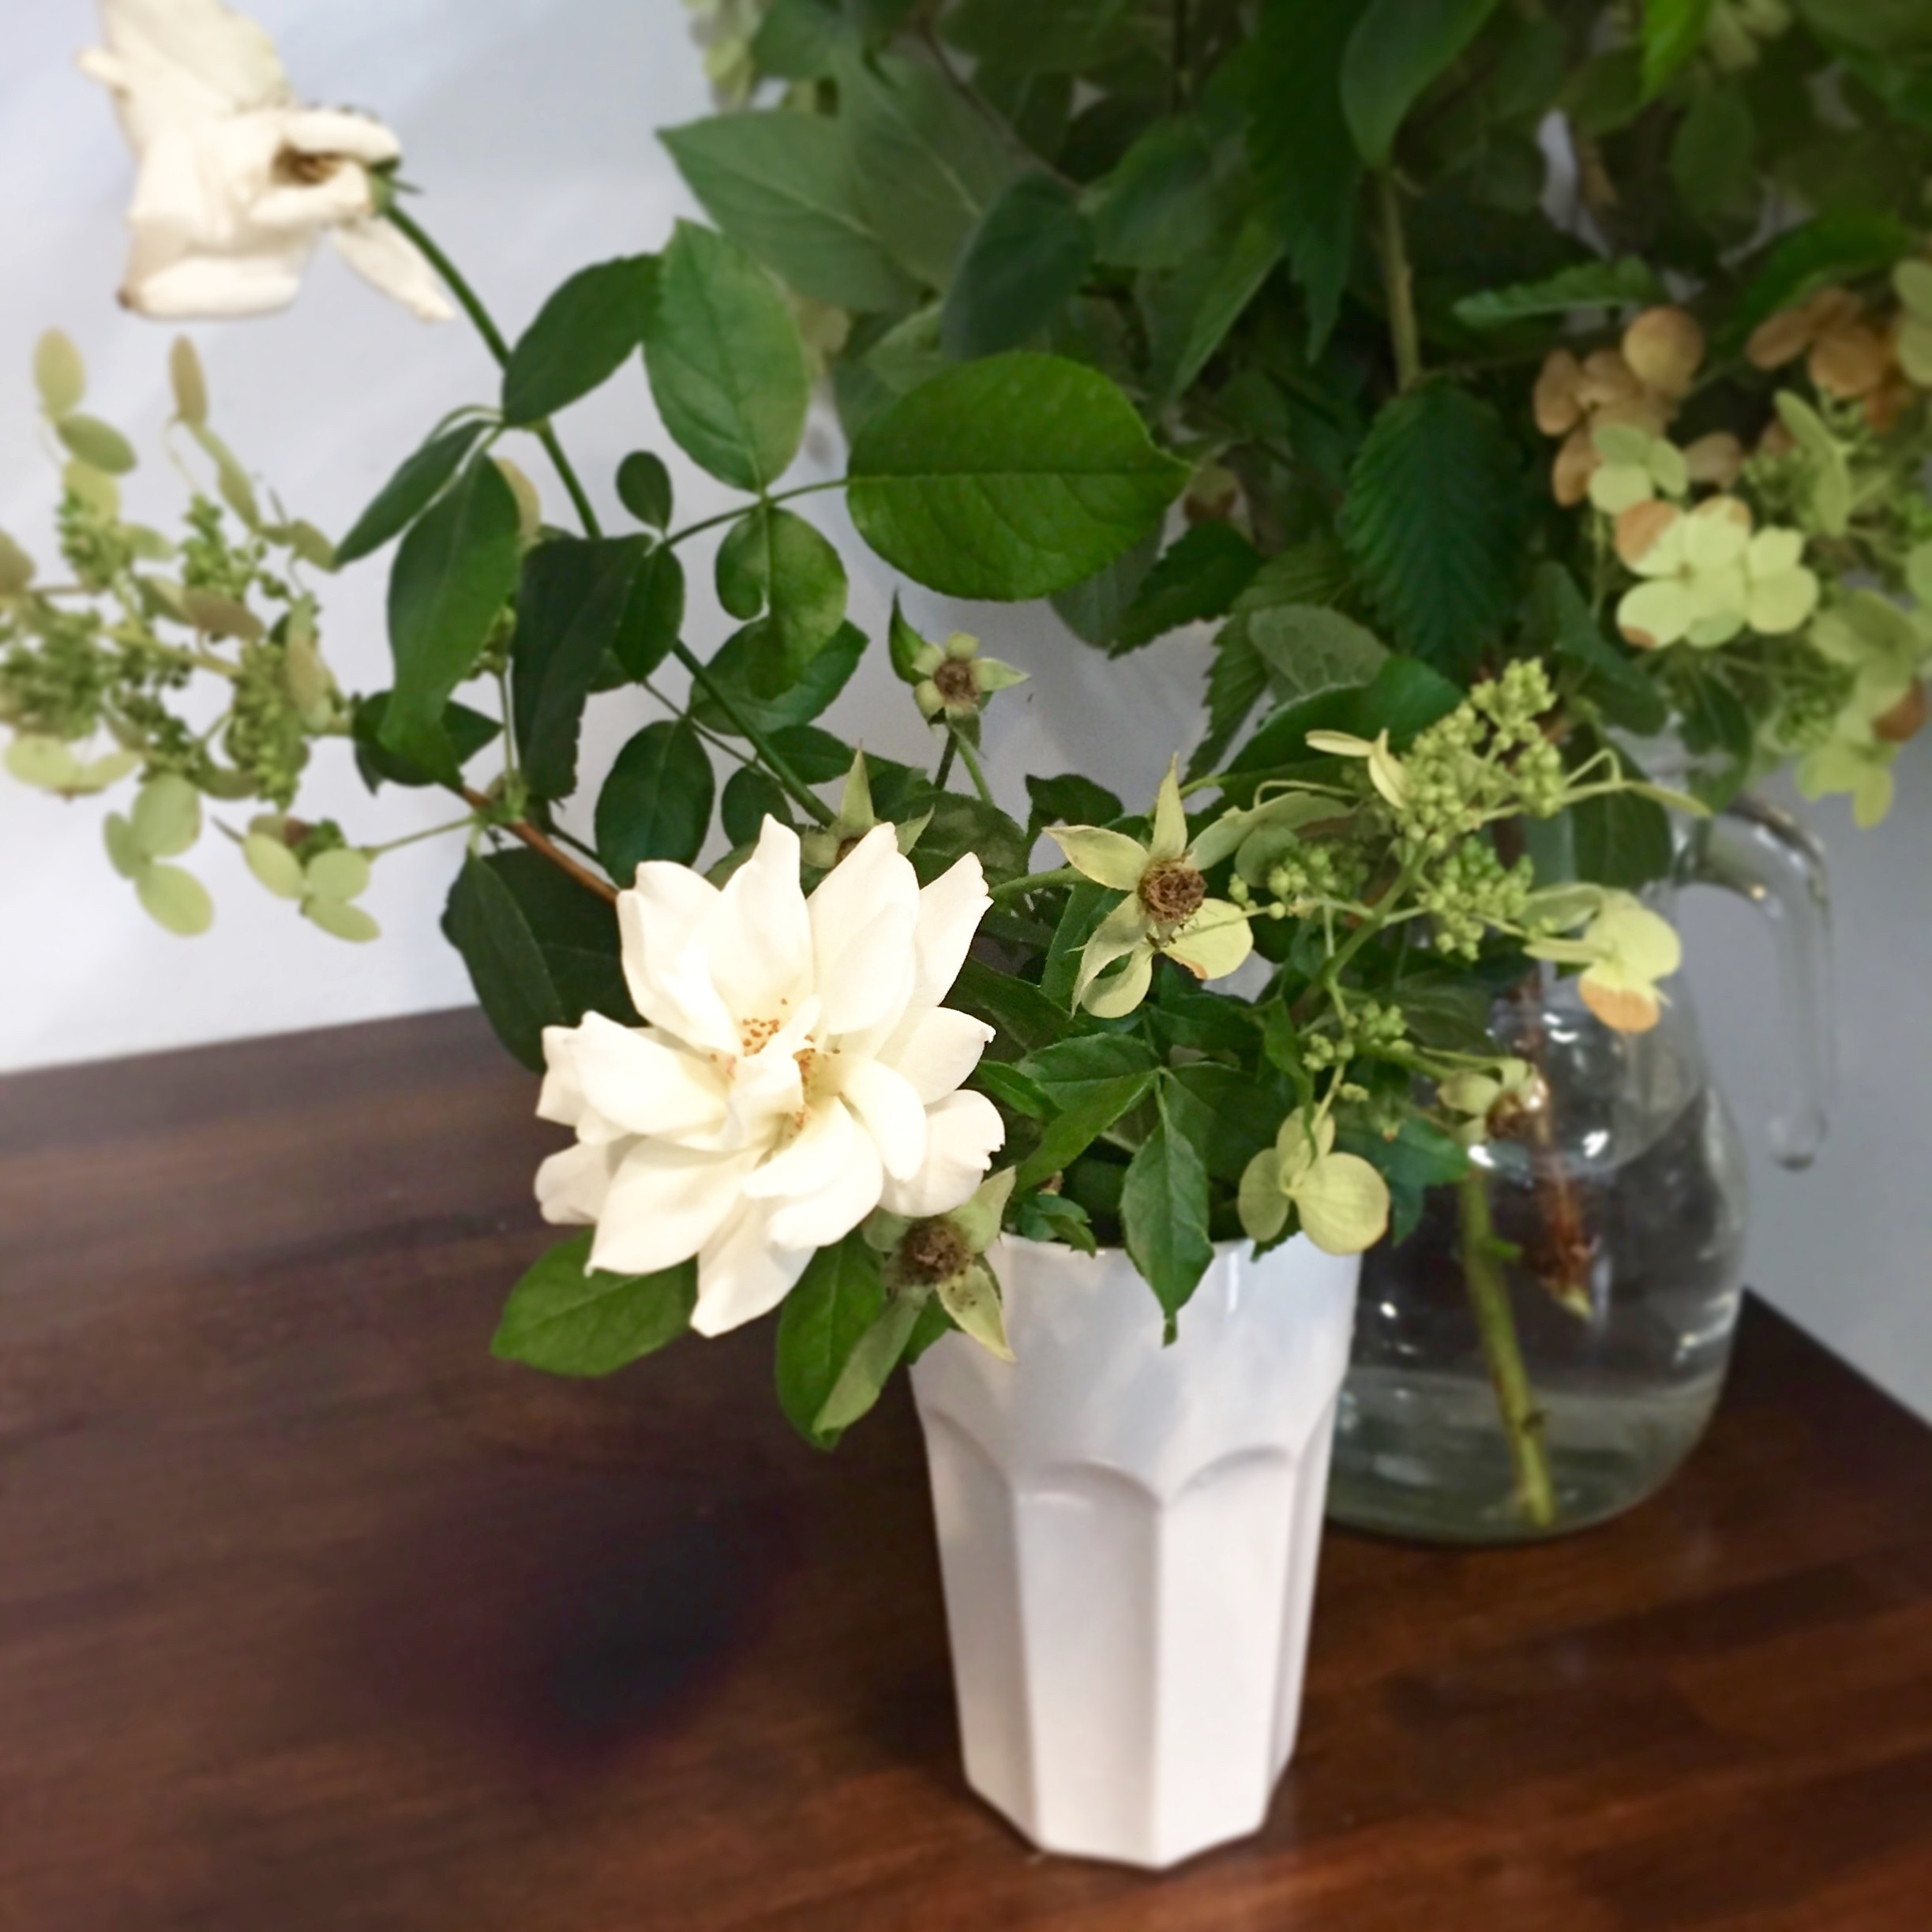 foraged flowers standing by